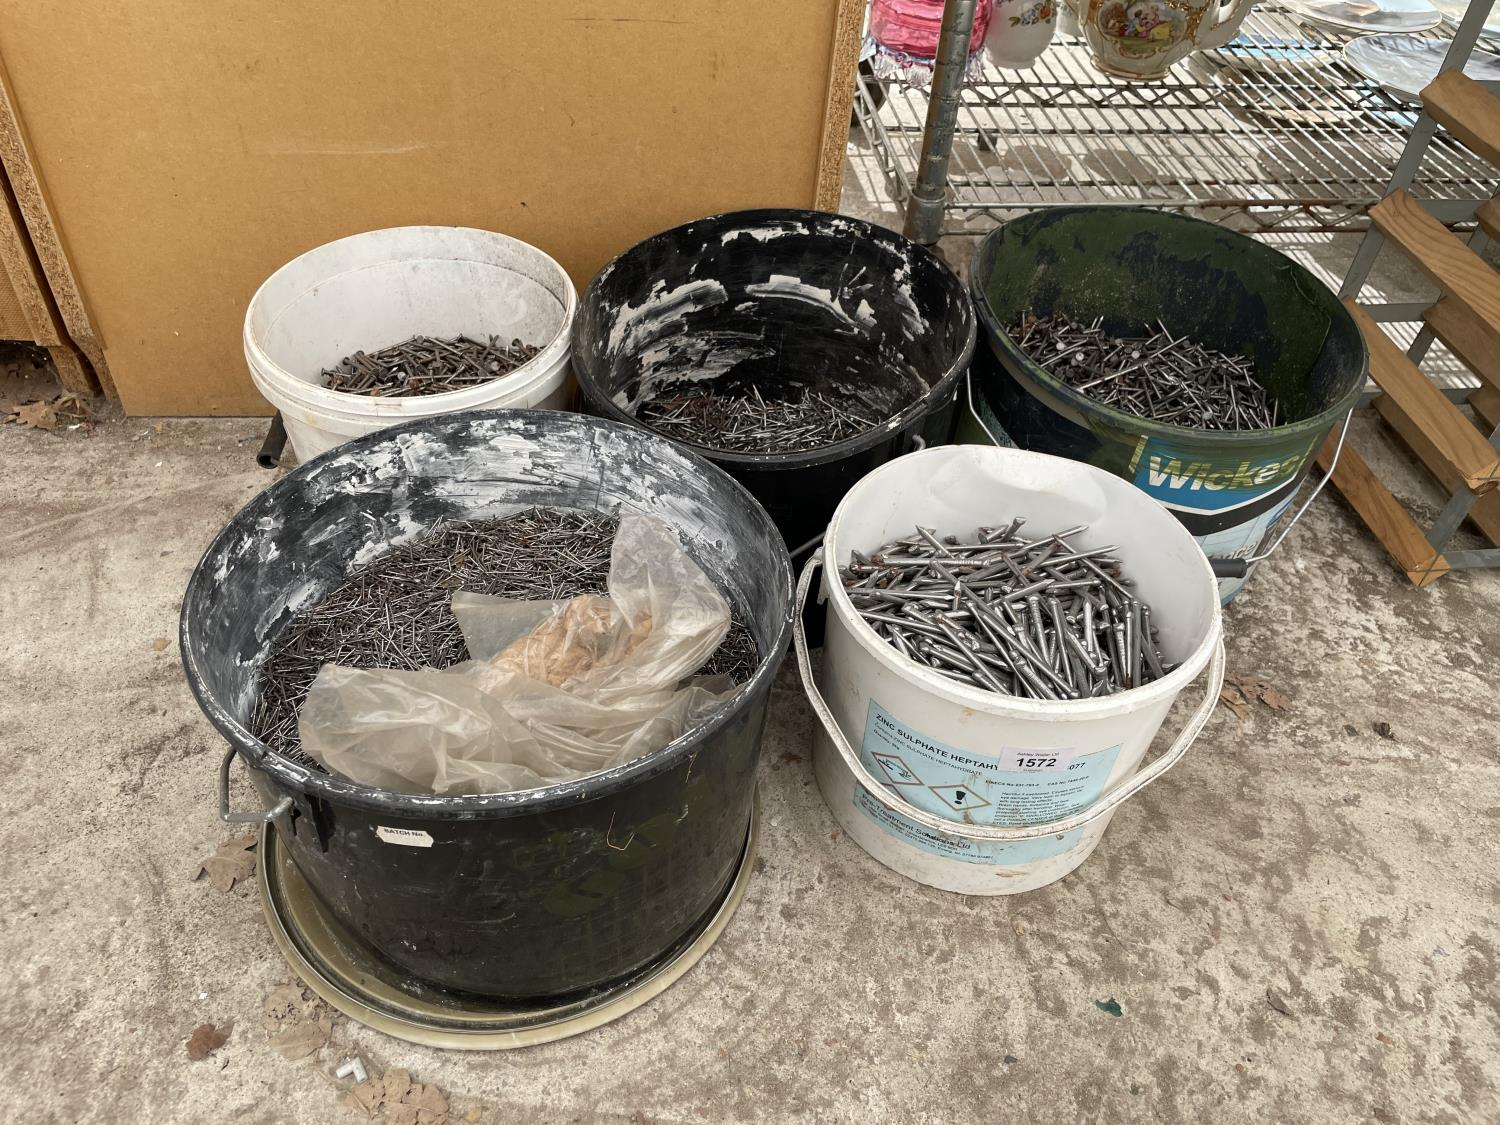 A LARGE QUANTITY OF GALVANISED NAILS